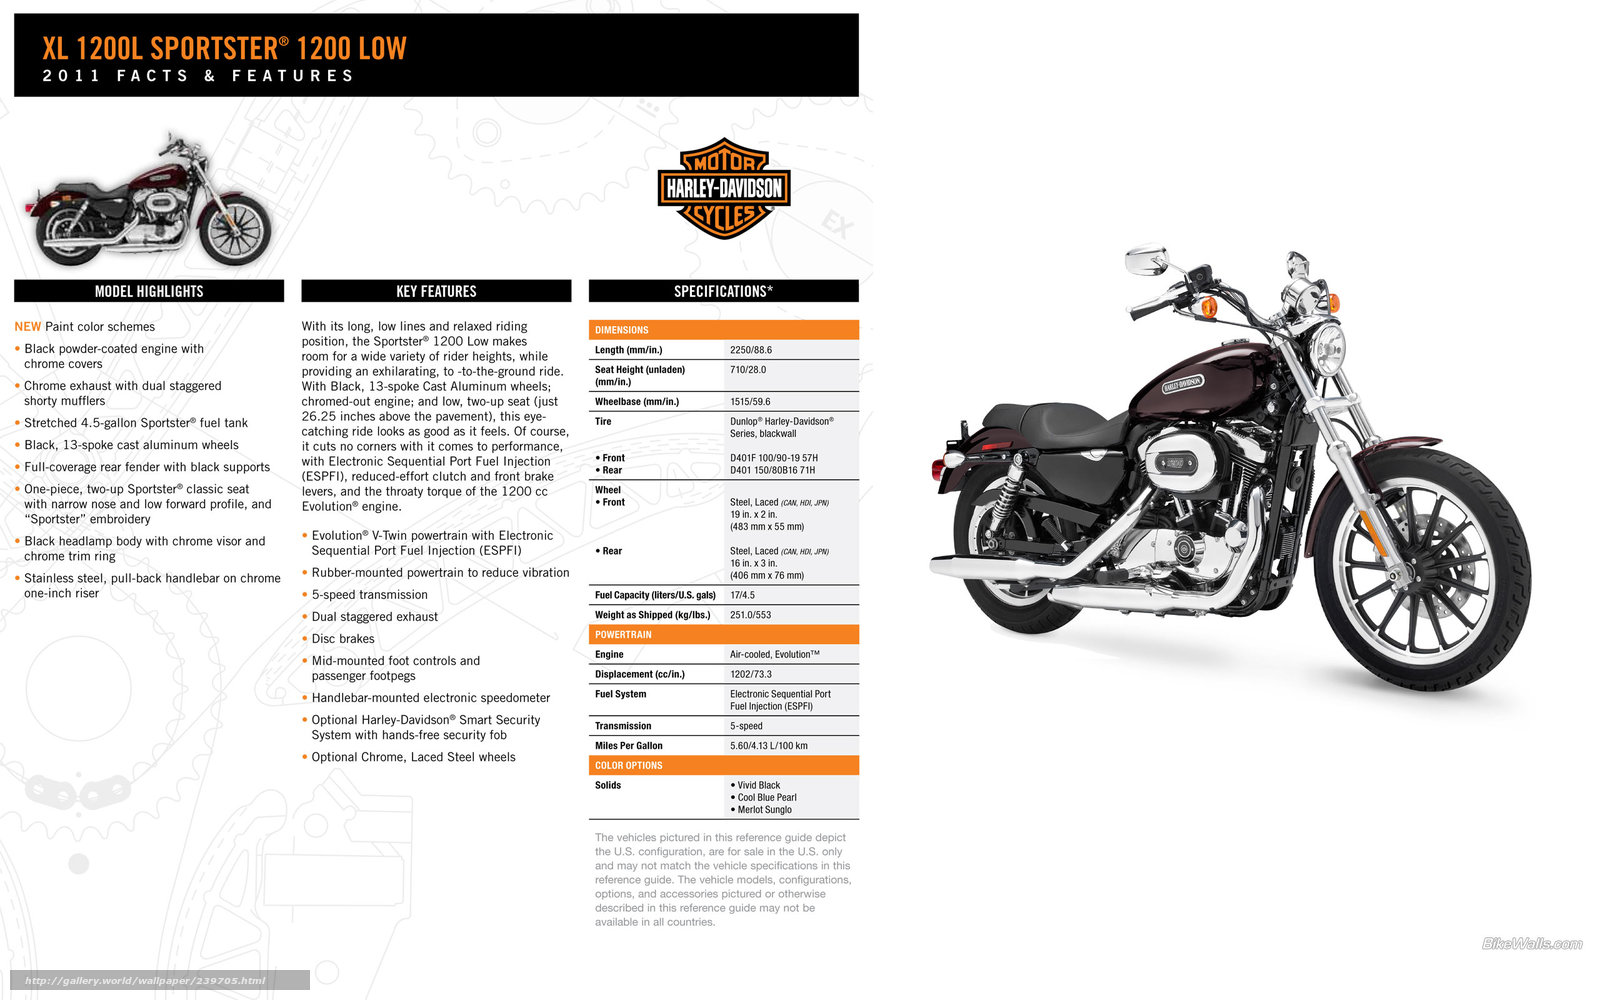 Sportster Engine Diagram as well 43028 Guidon Z Bar Harley Davidson Sportster Touring Road King Glides 883 1200 furthermore 825259 Wiring An Xlh together with 96 Sportster Wiring Diagram likewise 4016 Auspuff Schalld fer Khrome Werks 3 Hp Plus Tapered Vercromt Harley Davidson Xl Sportster 14 17. on harley davidson sportster 1200 sport